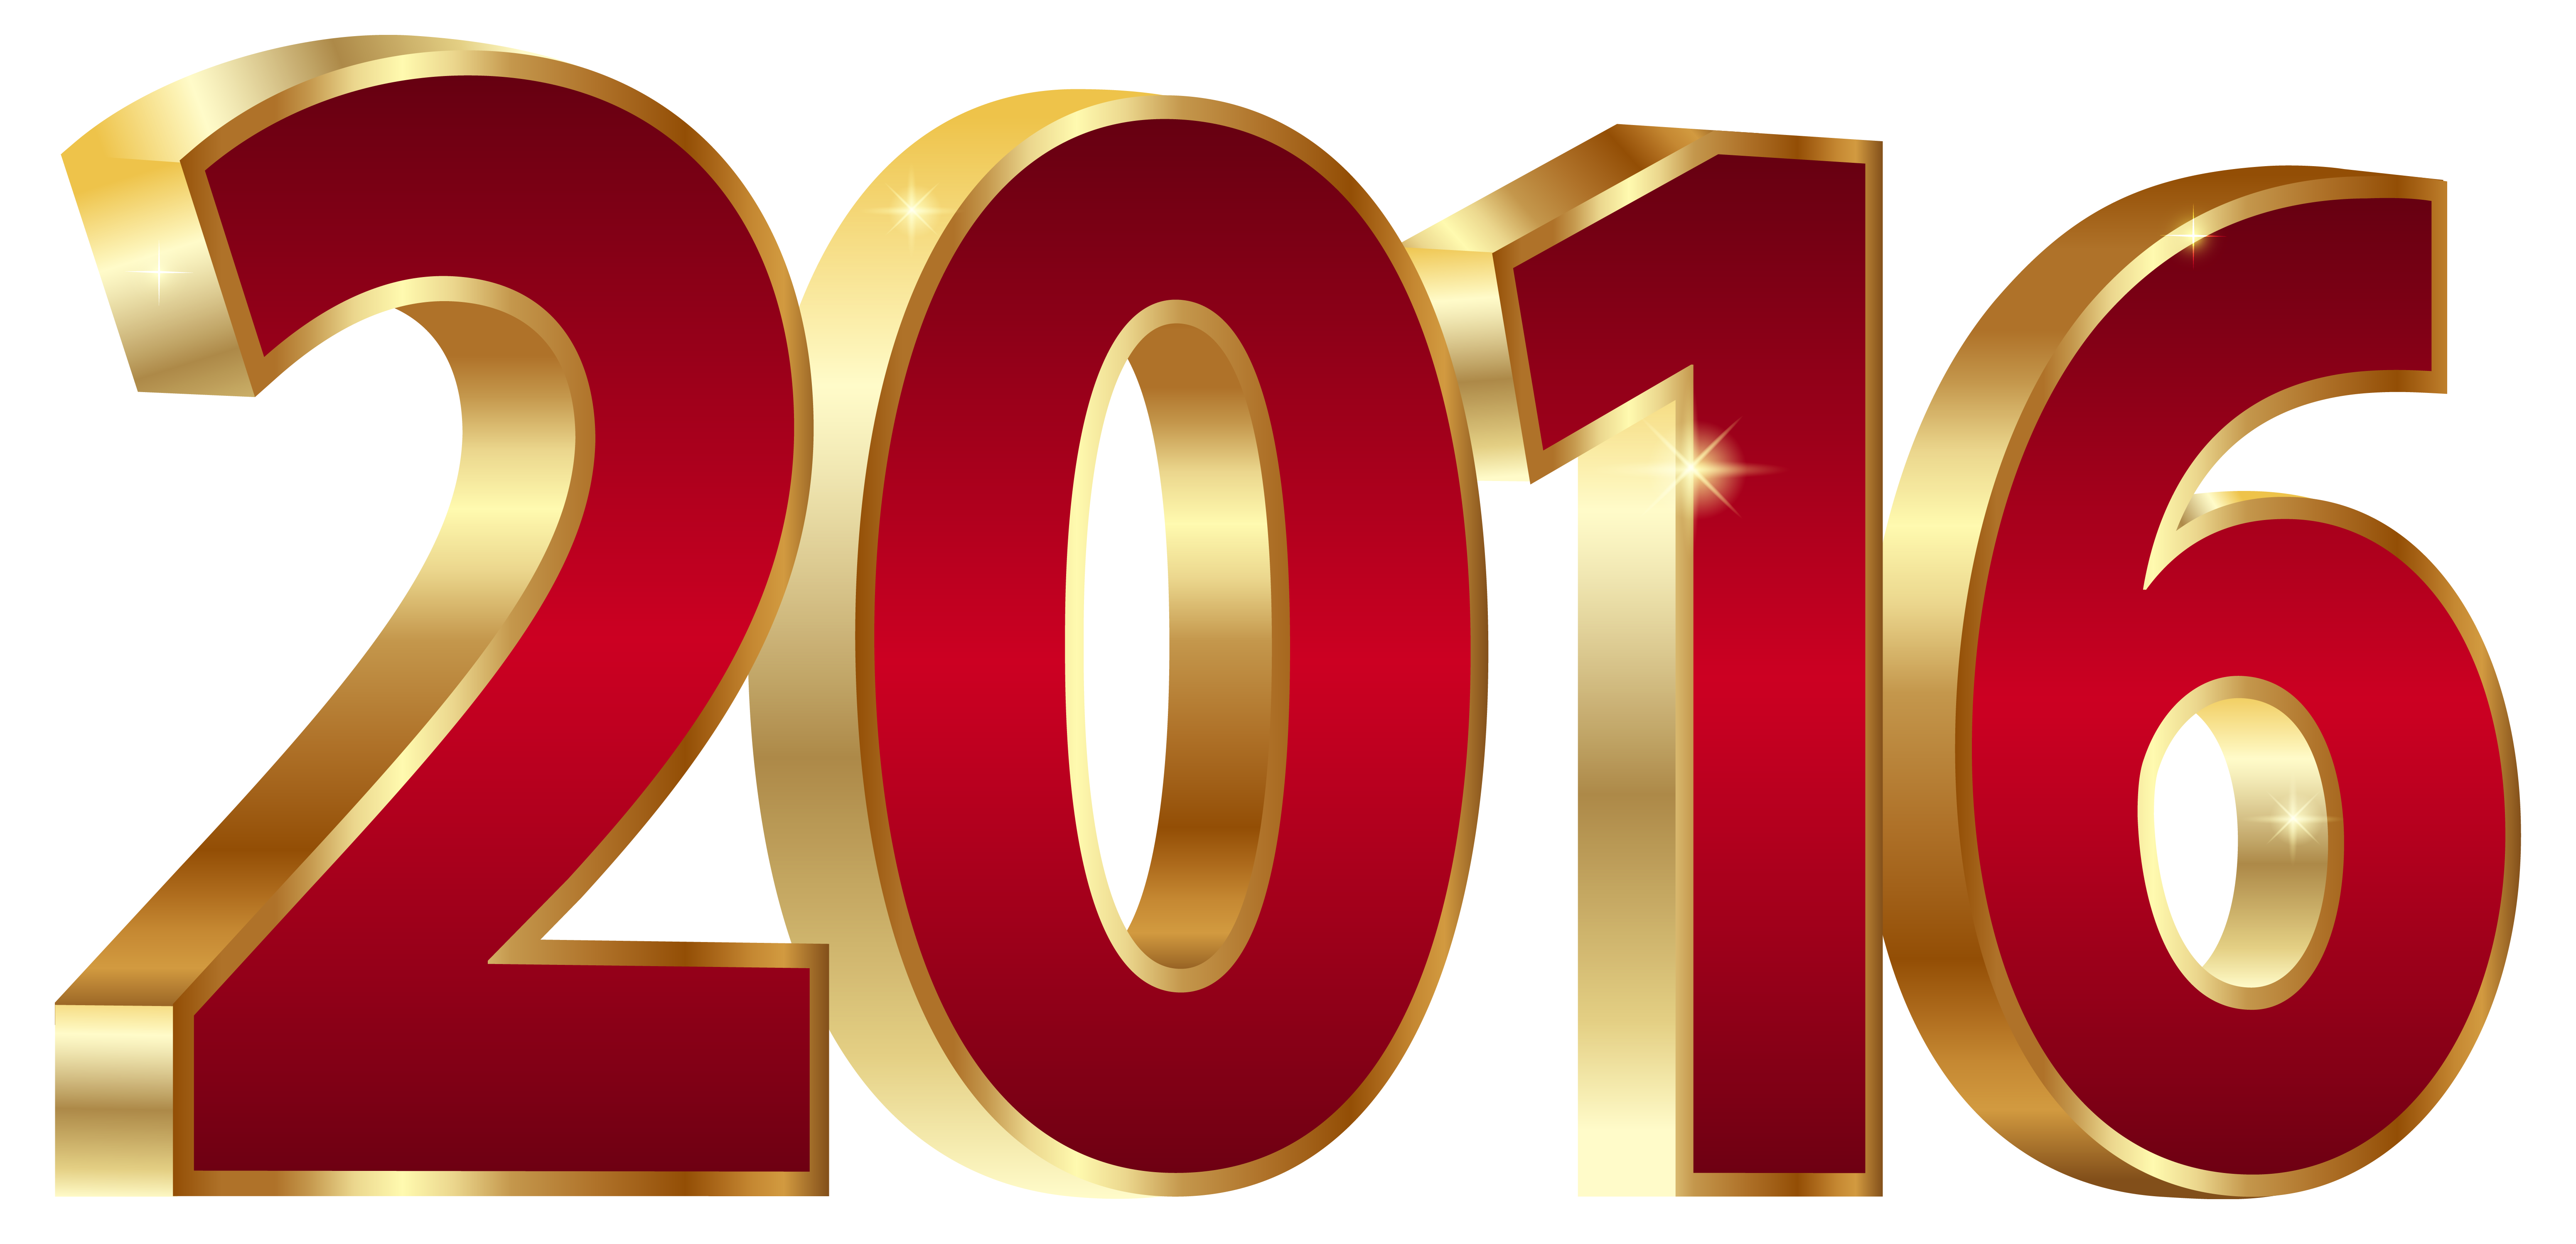 2016 Gold and Red PNG Clipart Image.